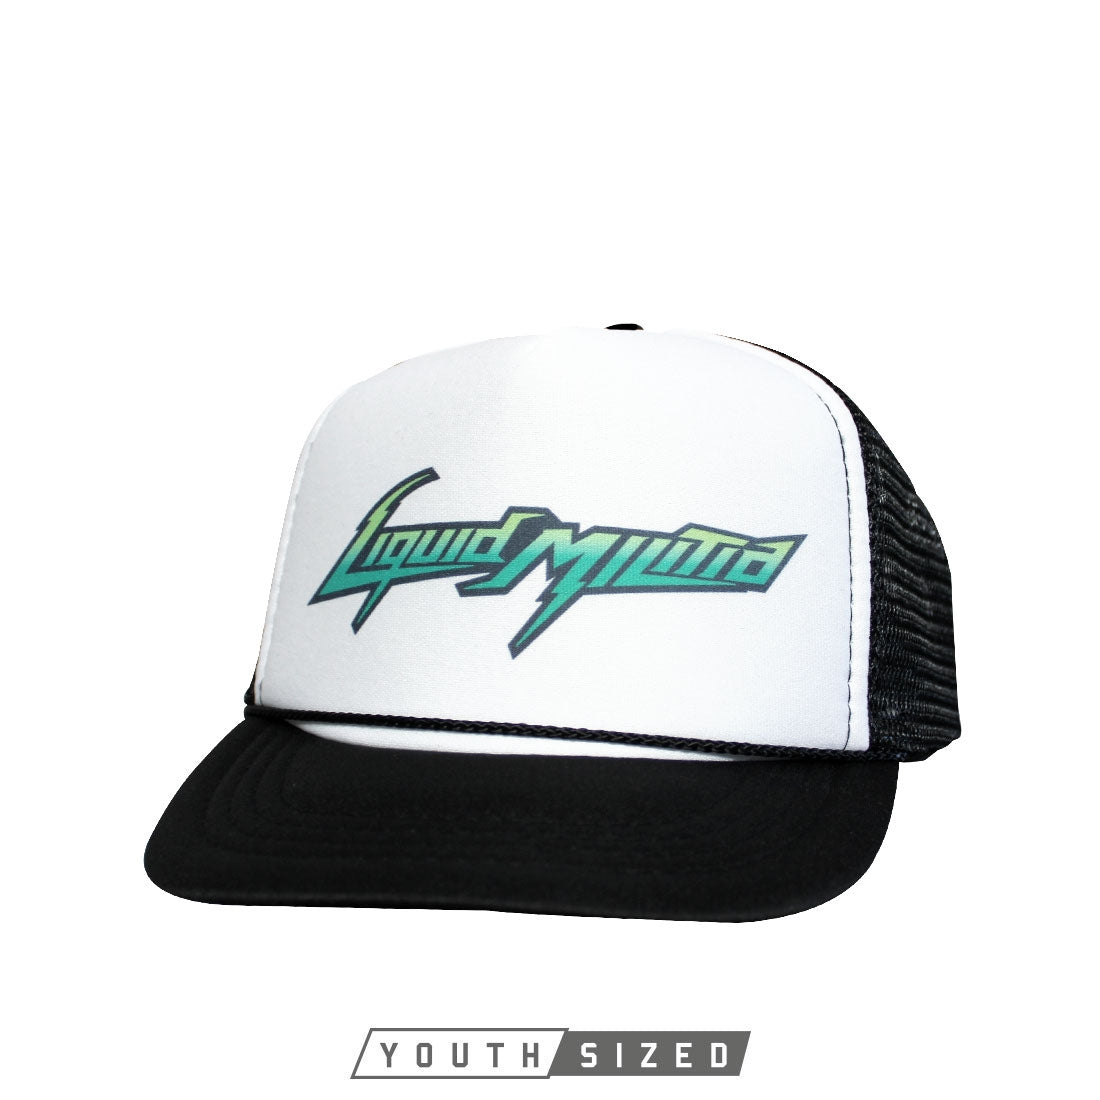 Energy Youth Curved Bill Trucker Hat in Black White Black - Front View